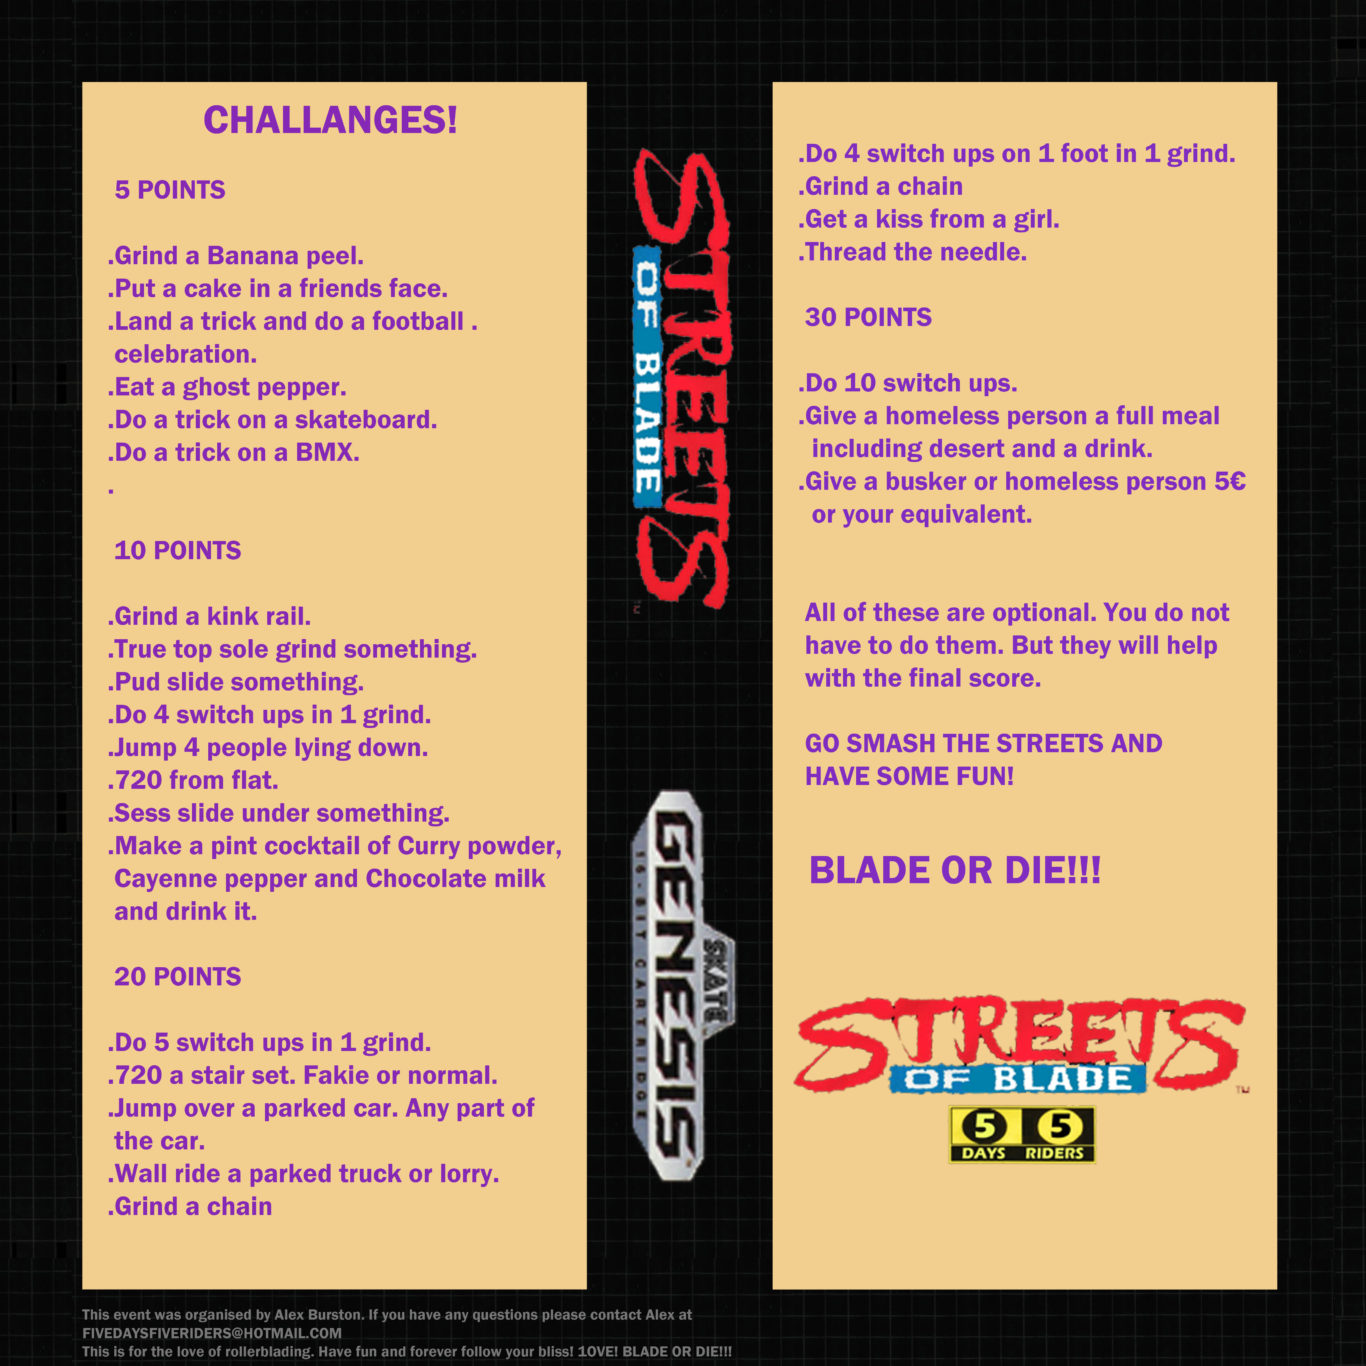 streets-of-blade-point-system